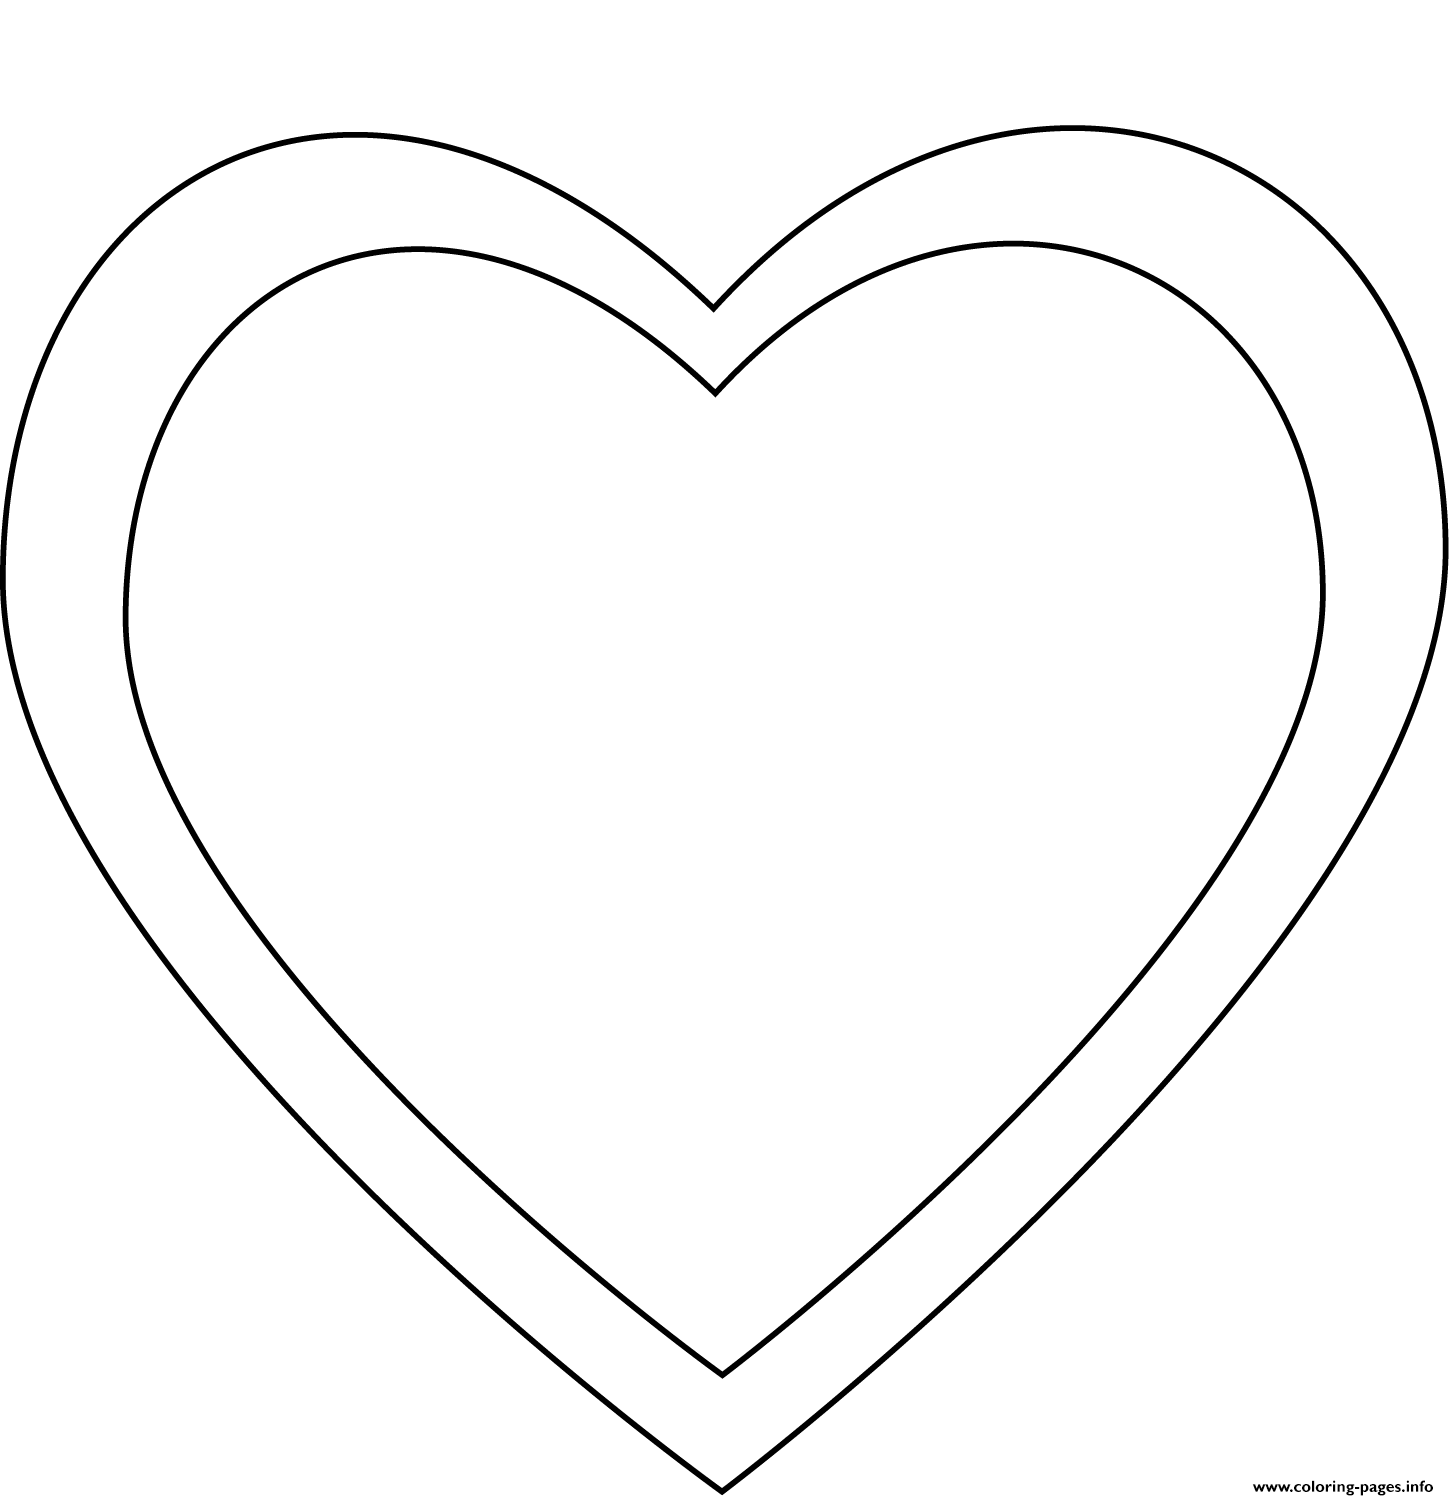 Simple Heart 4 coloring pages